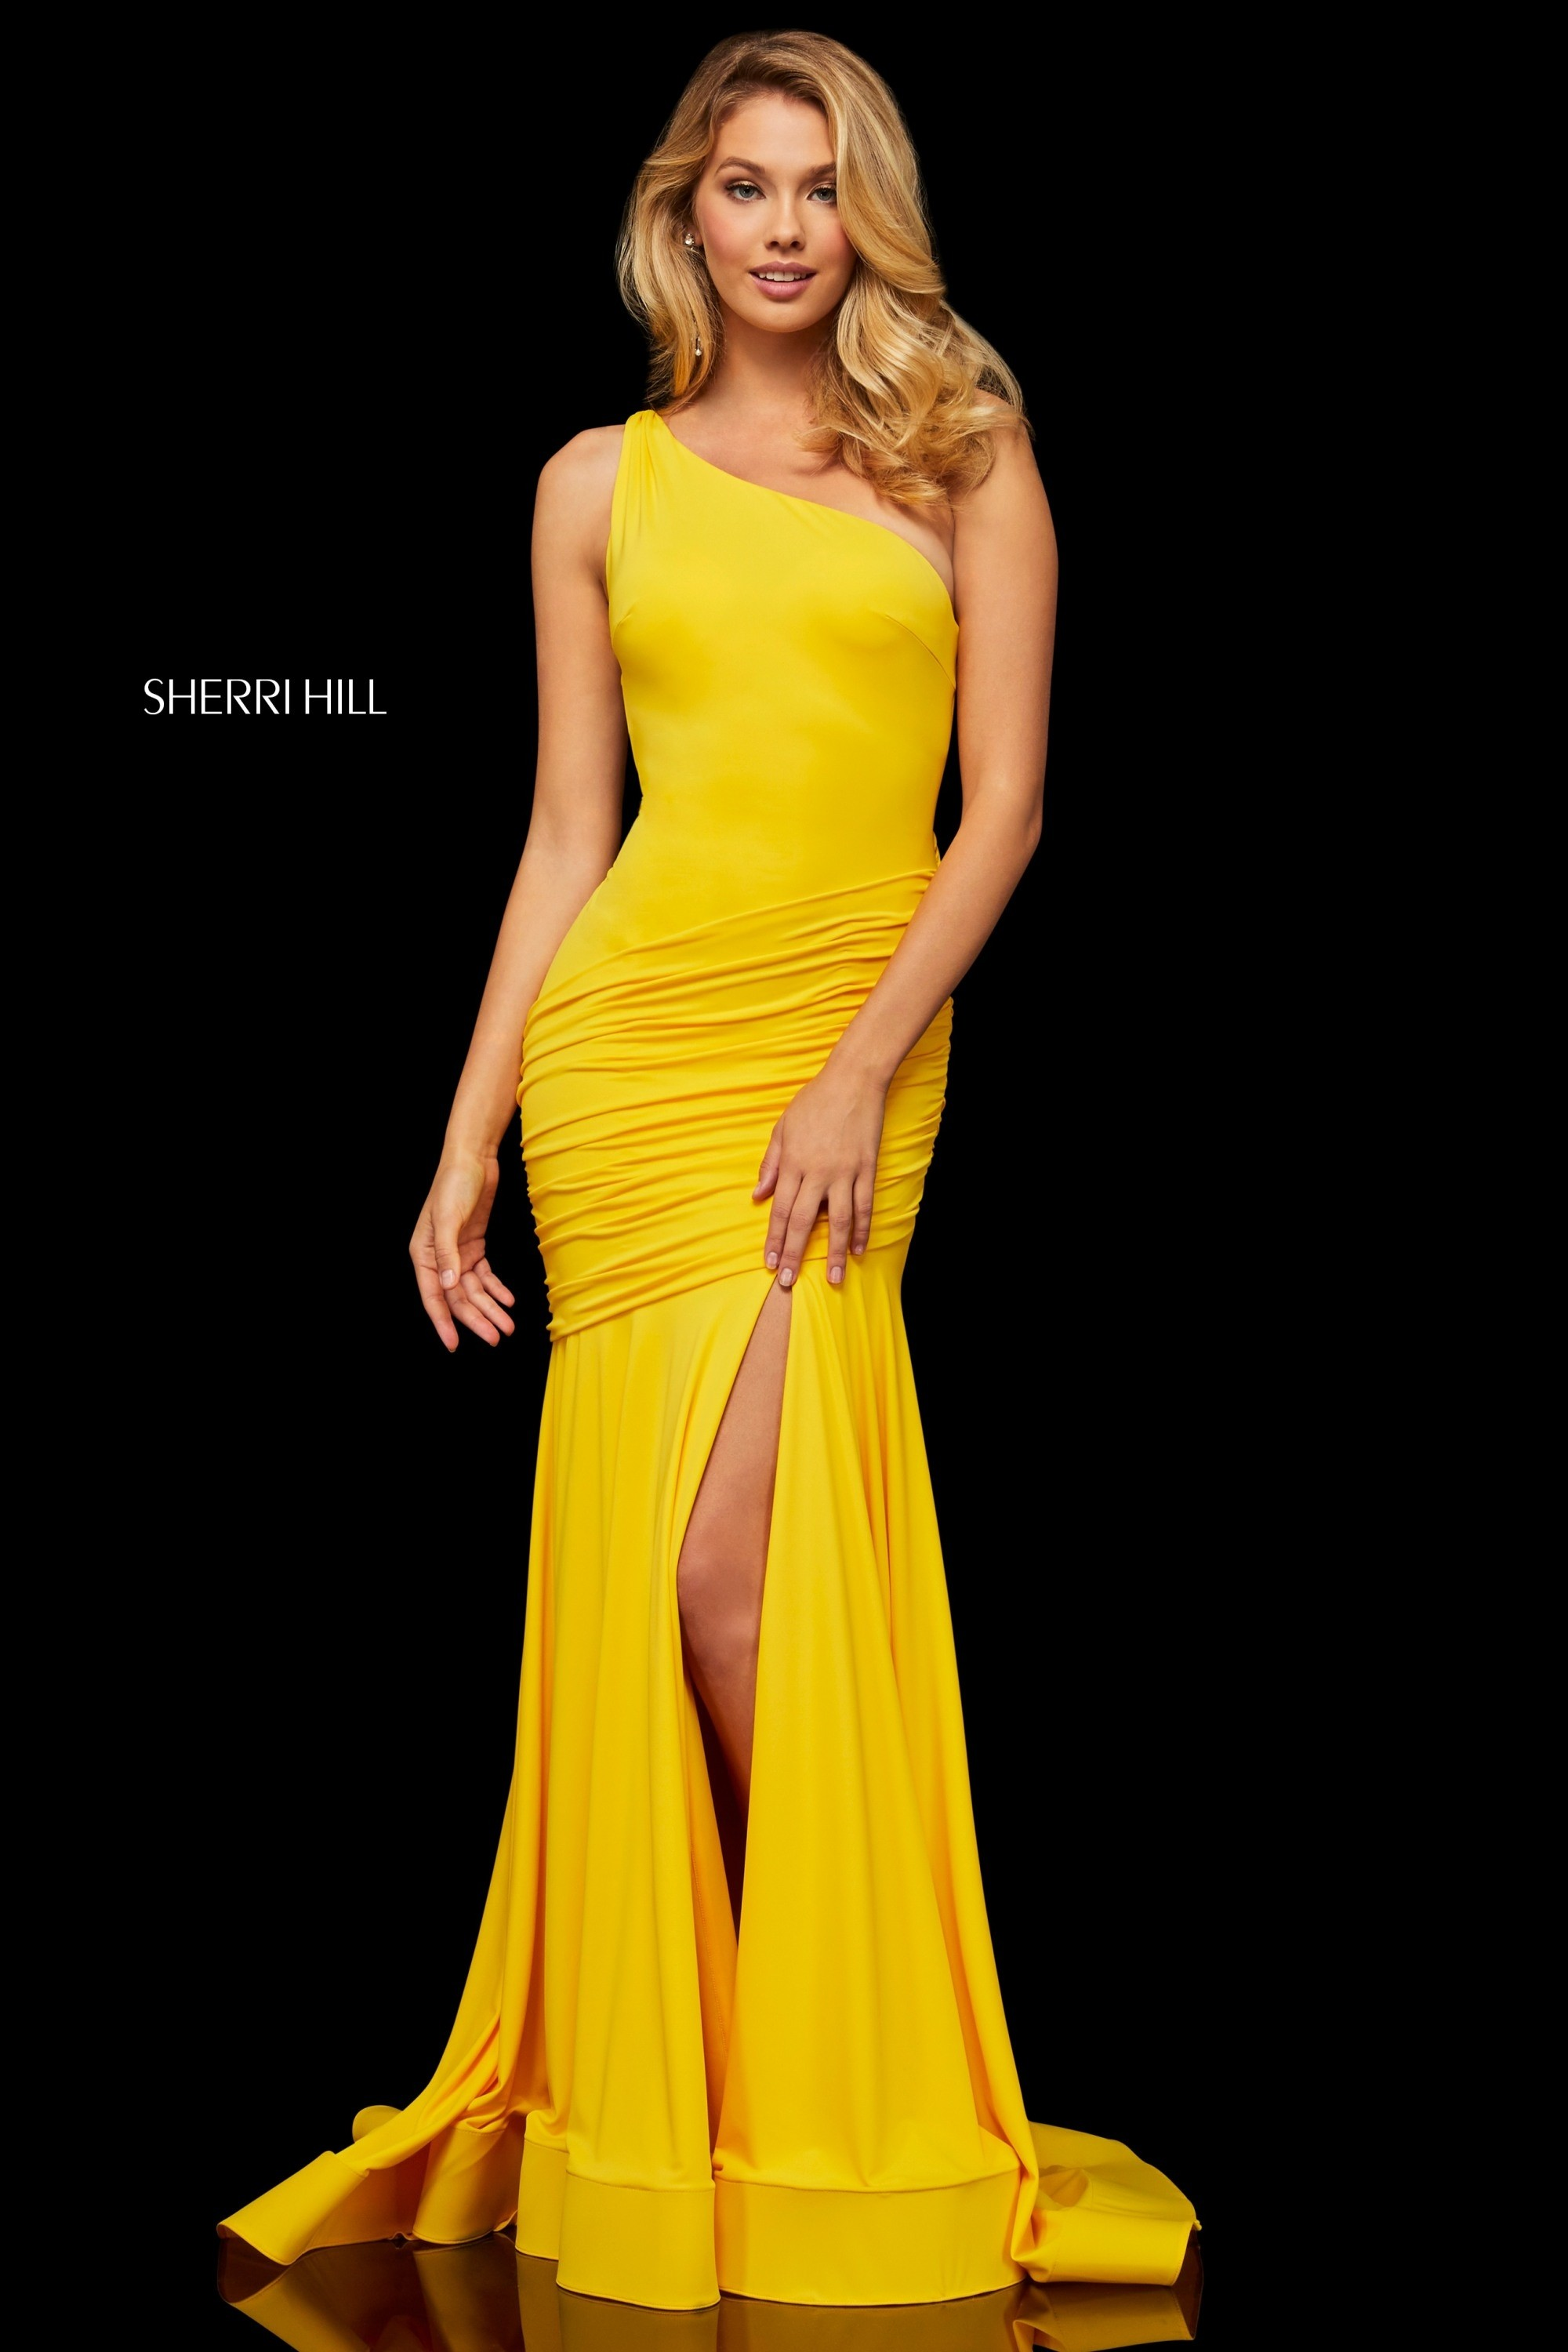 c59d37a0a9 Sherri Hill 52902 Ruched One-Shoulder Gown